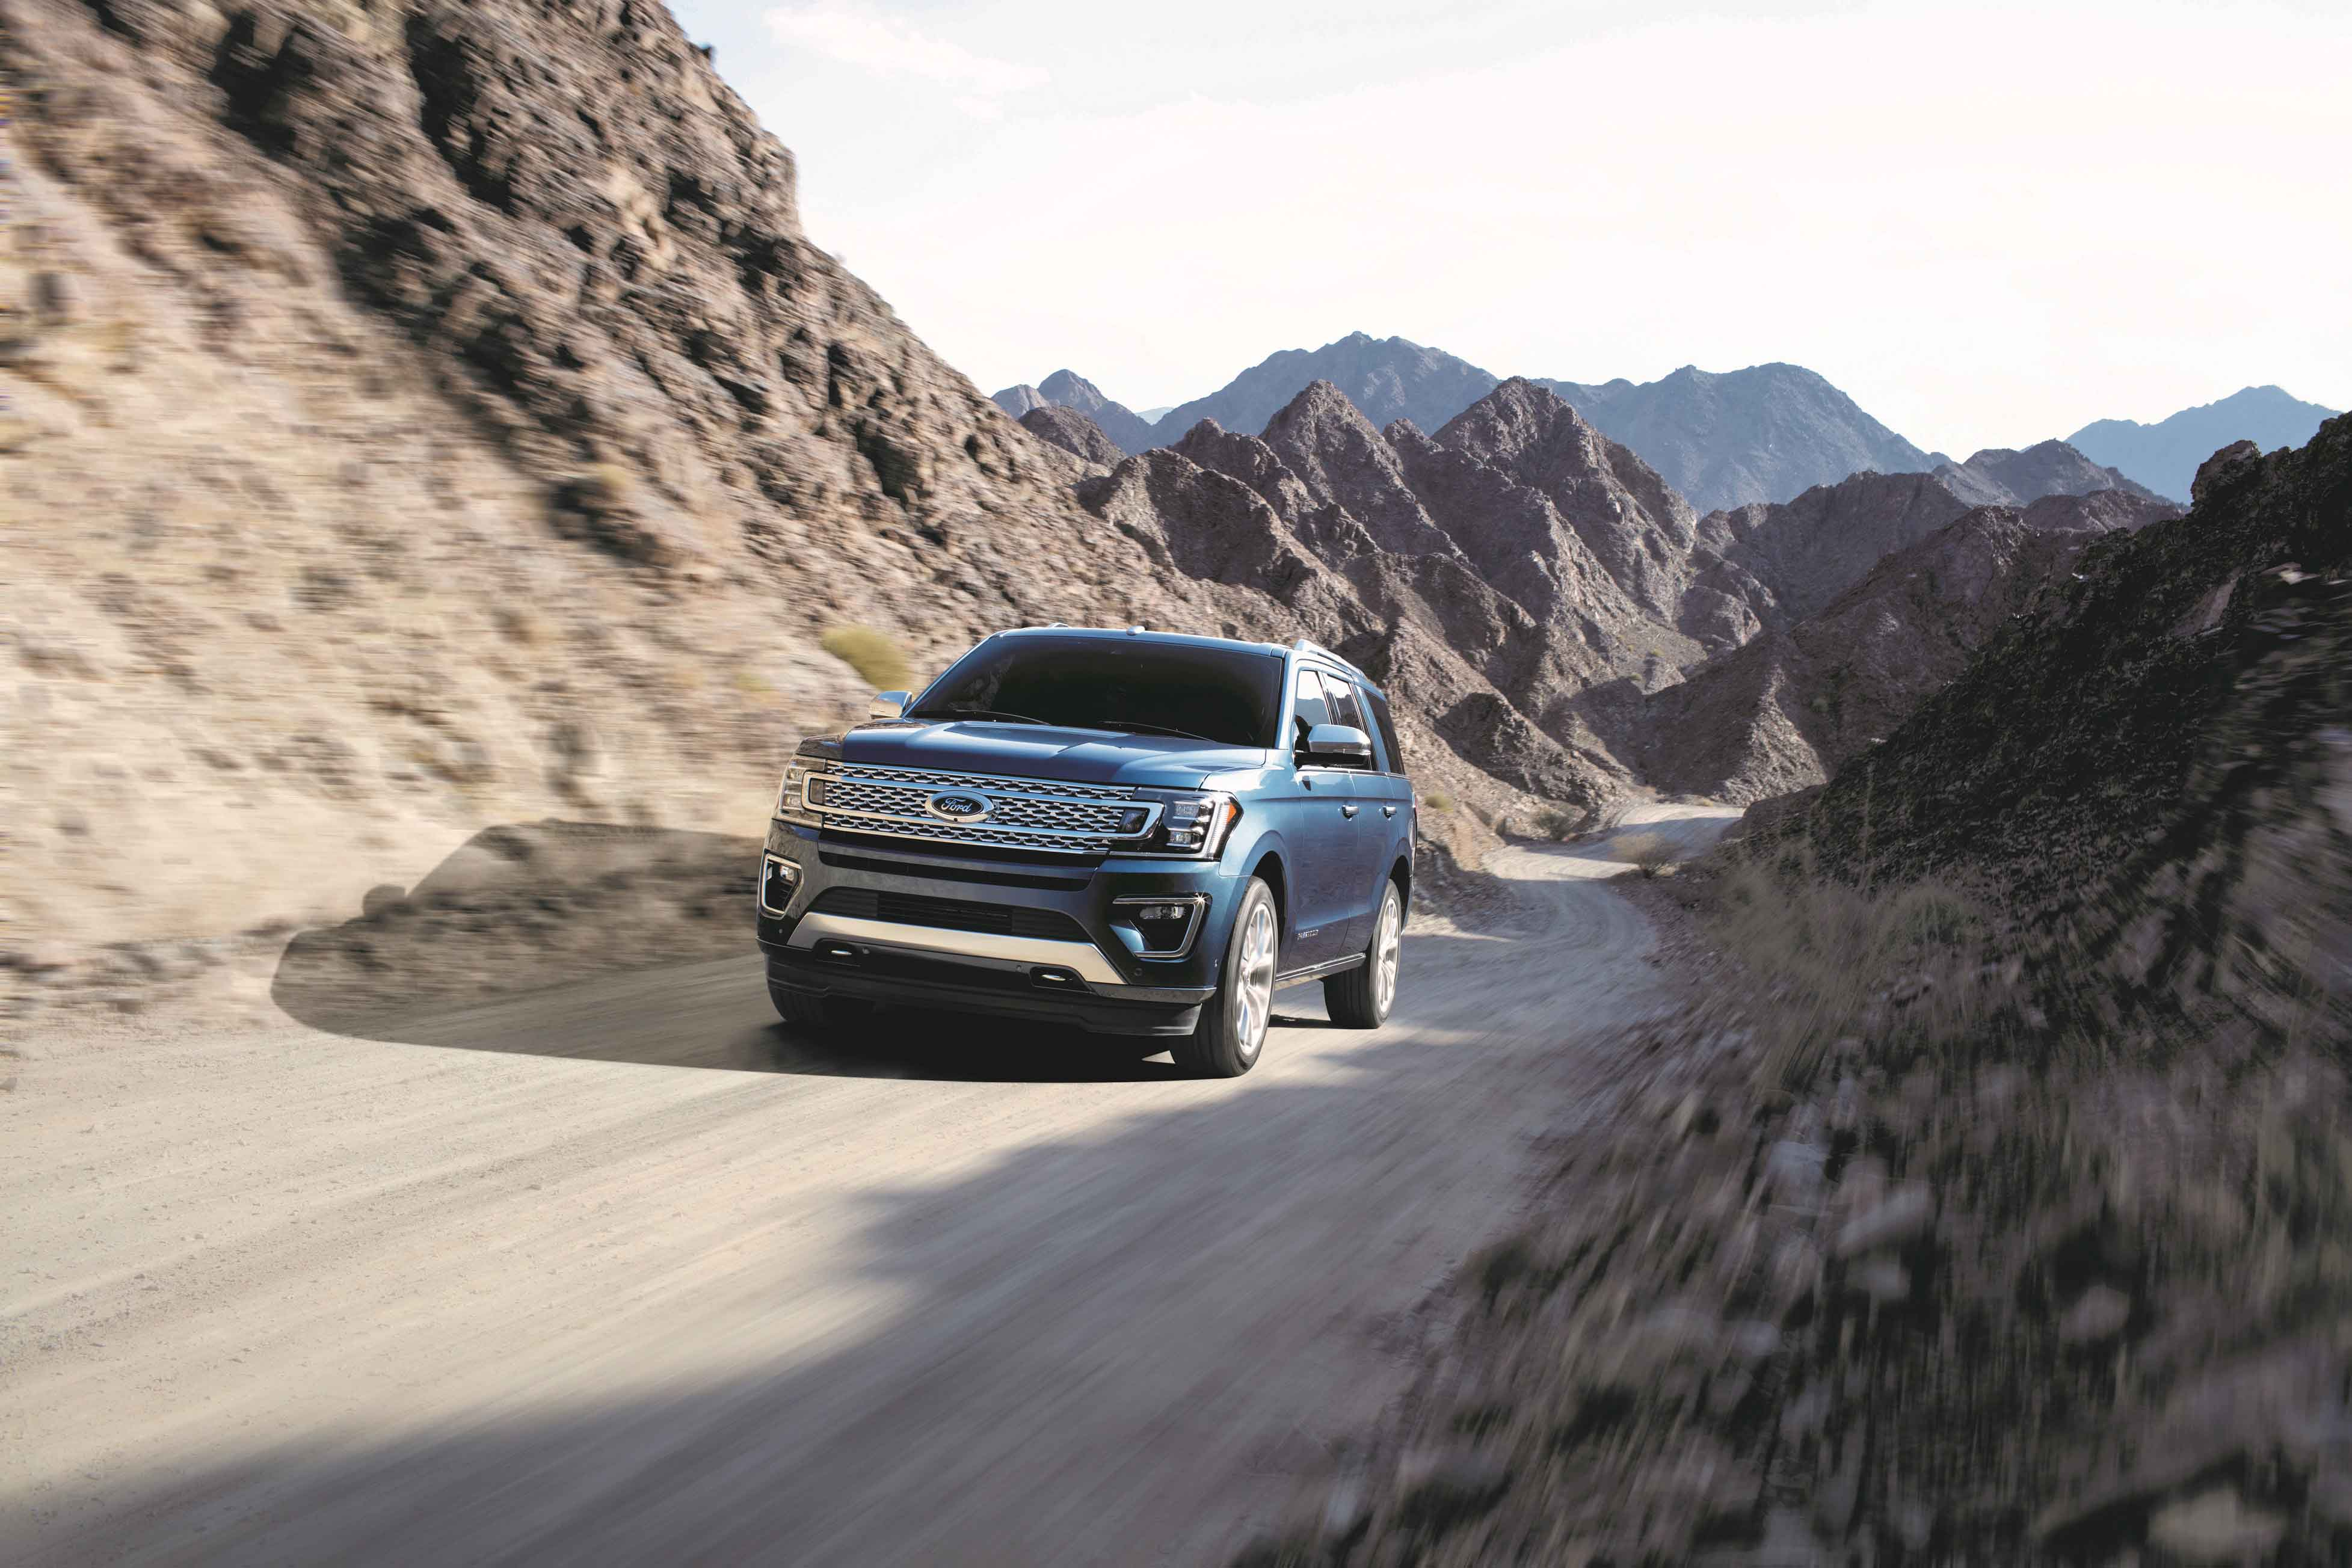 The Ford Expedition